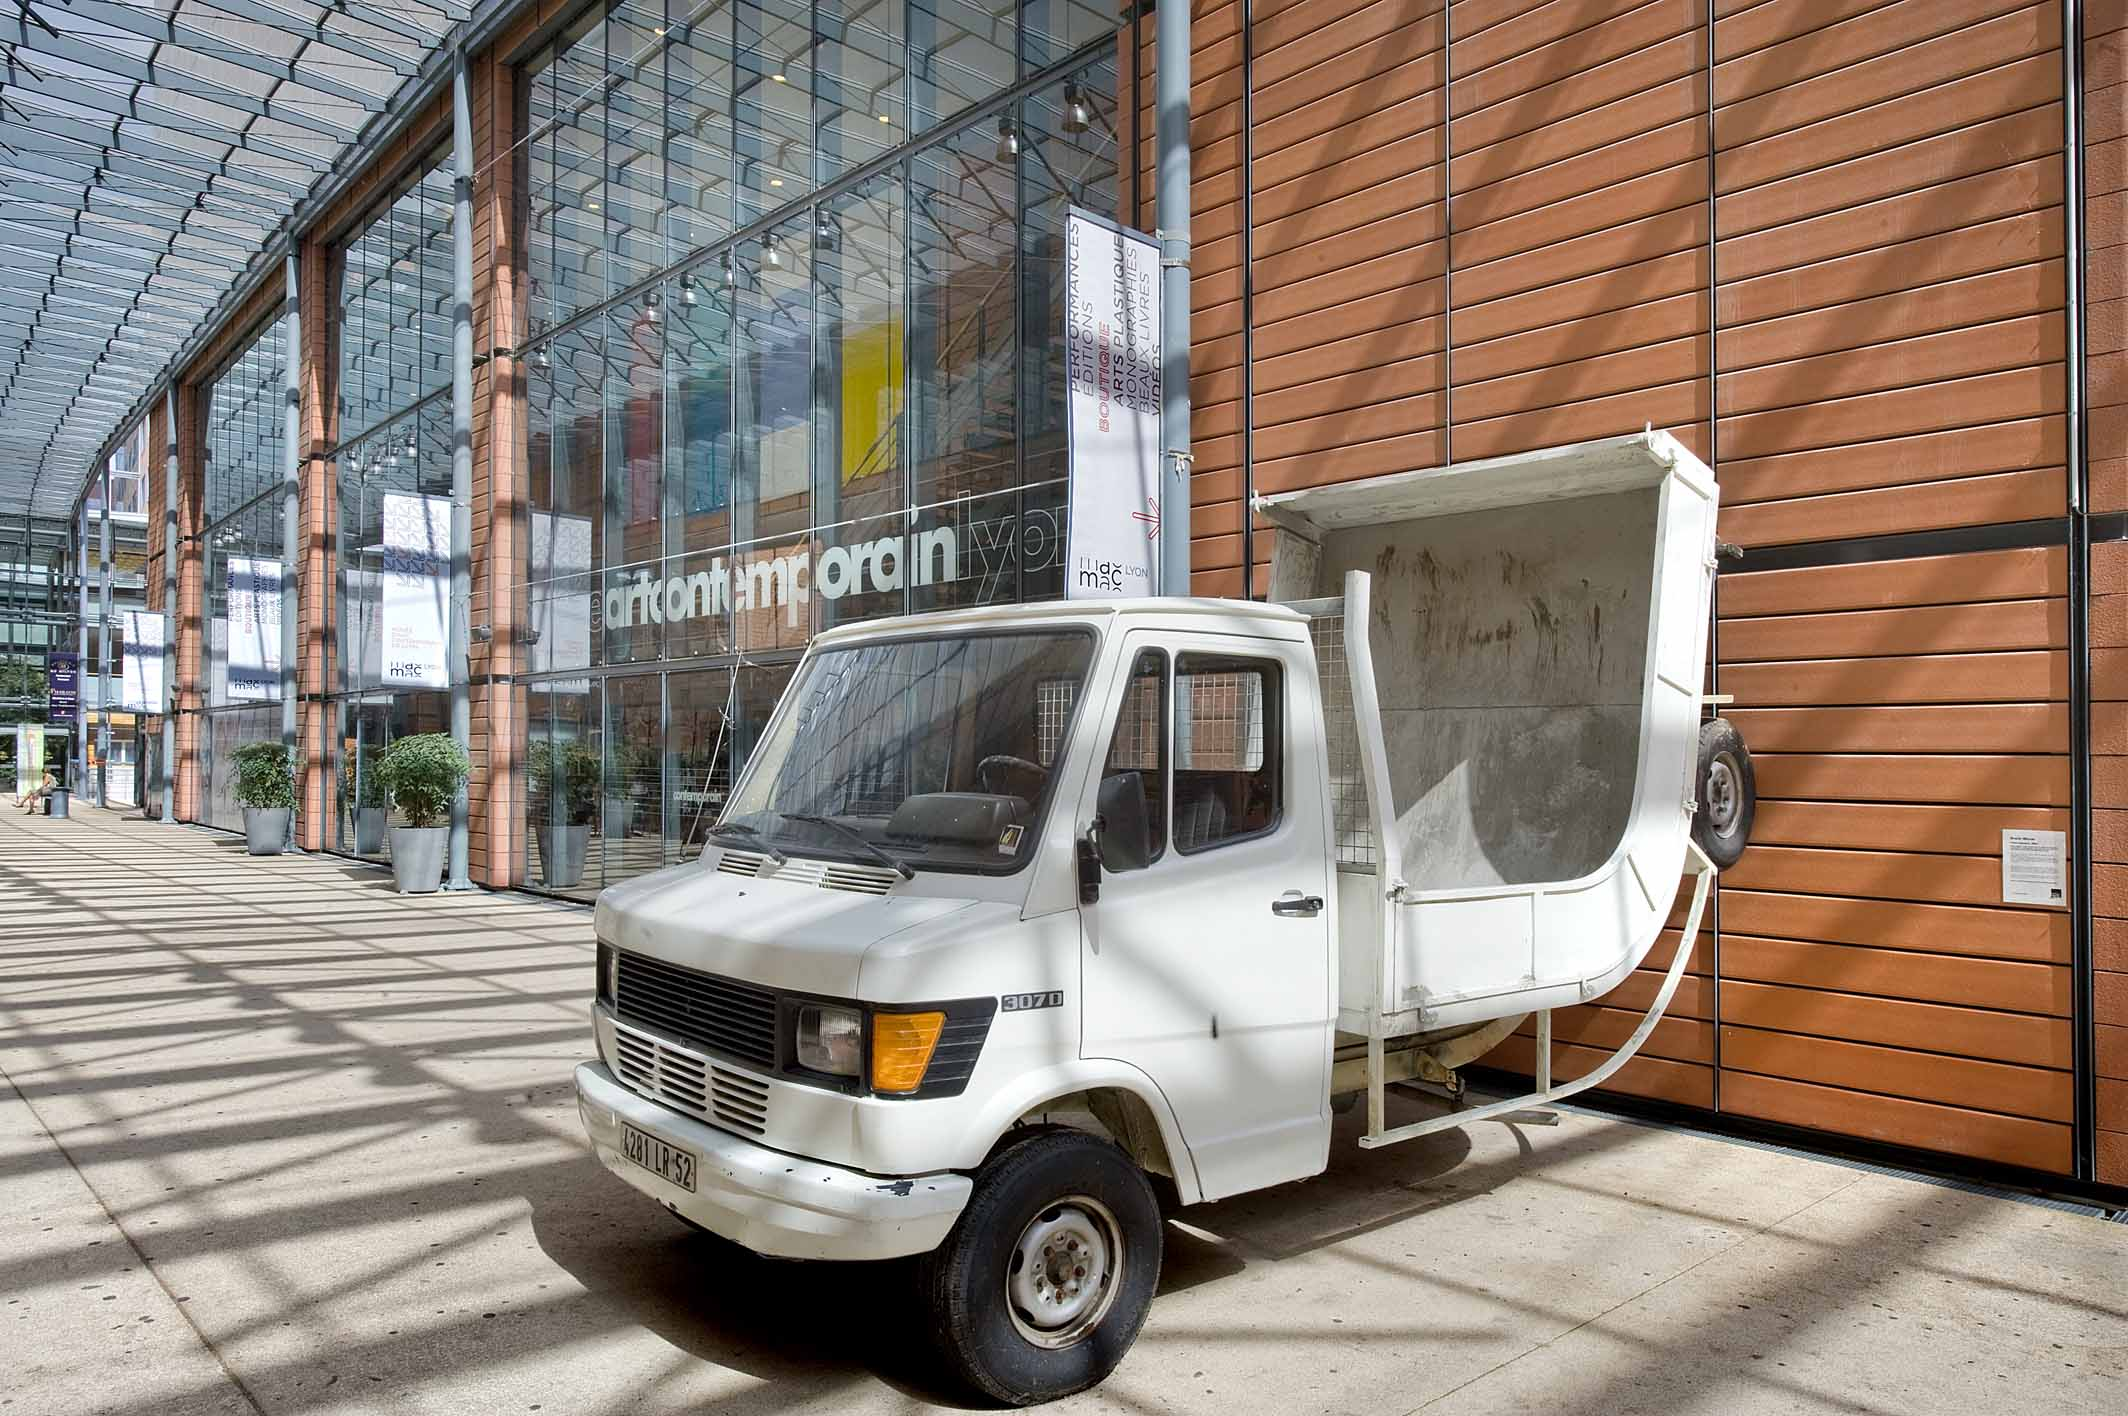 Erwin Wurm, Truck, 2007. Collection macLYON